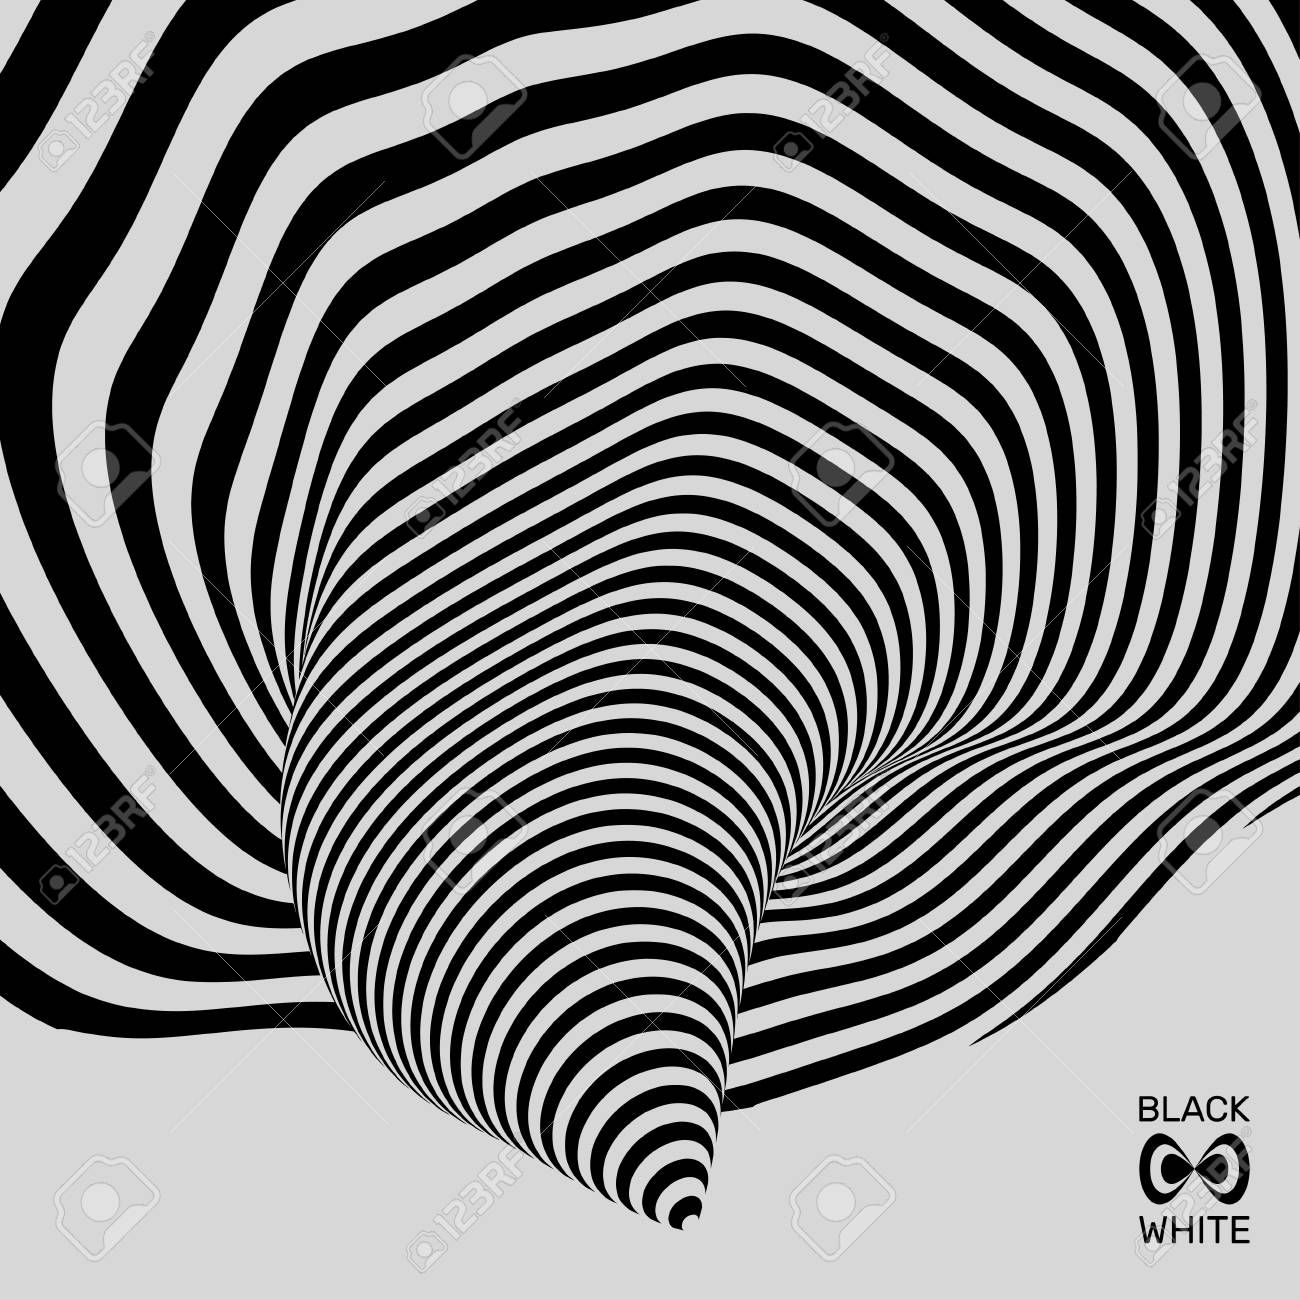 Tunnel abstract 3d geometrical background black and white design pattern with optical illusion